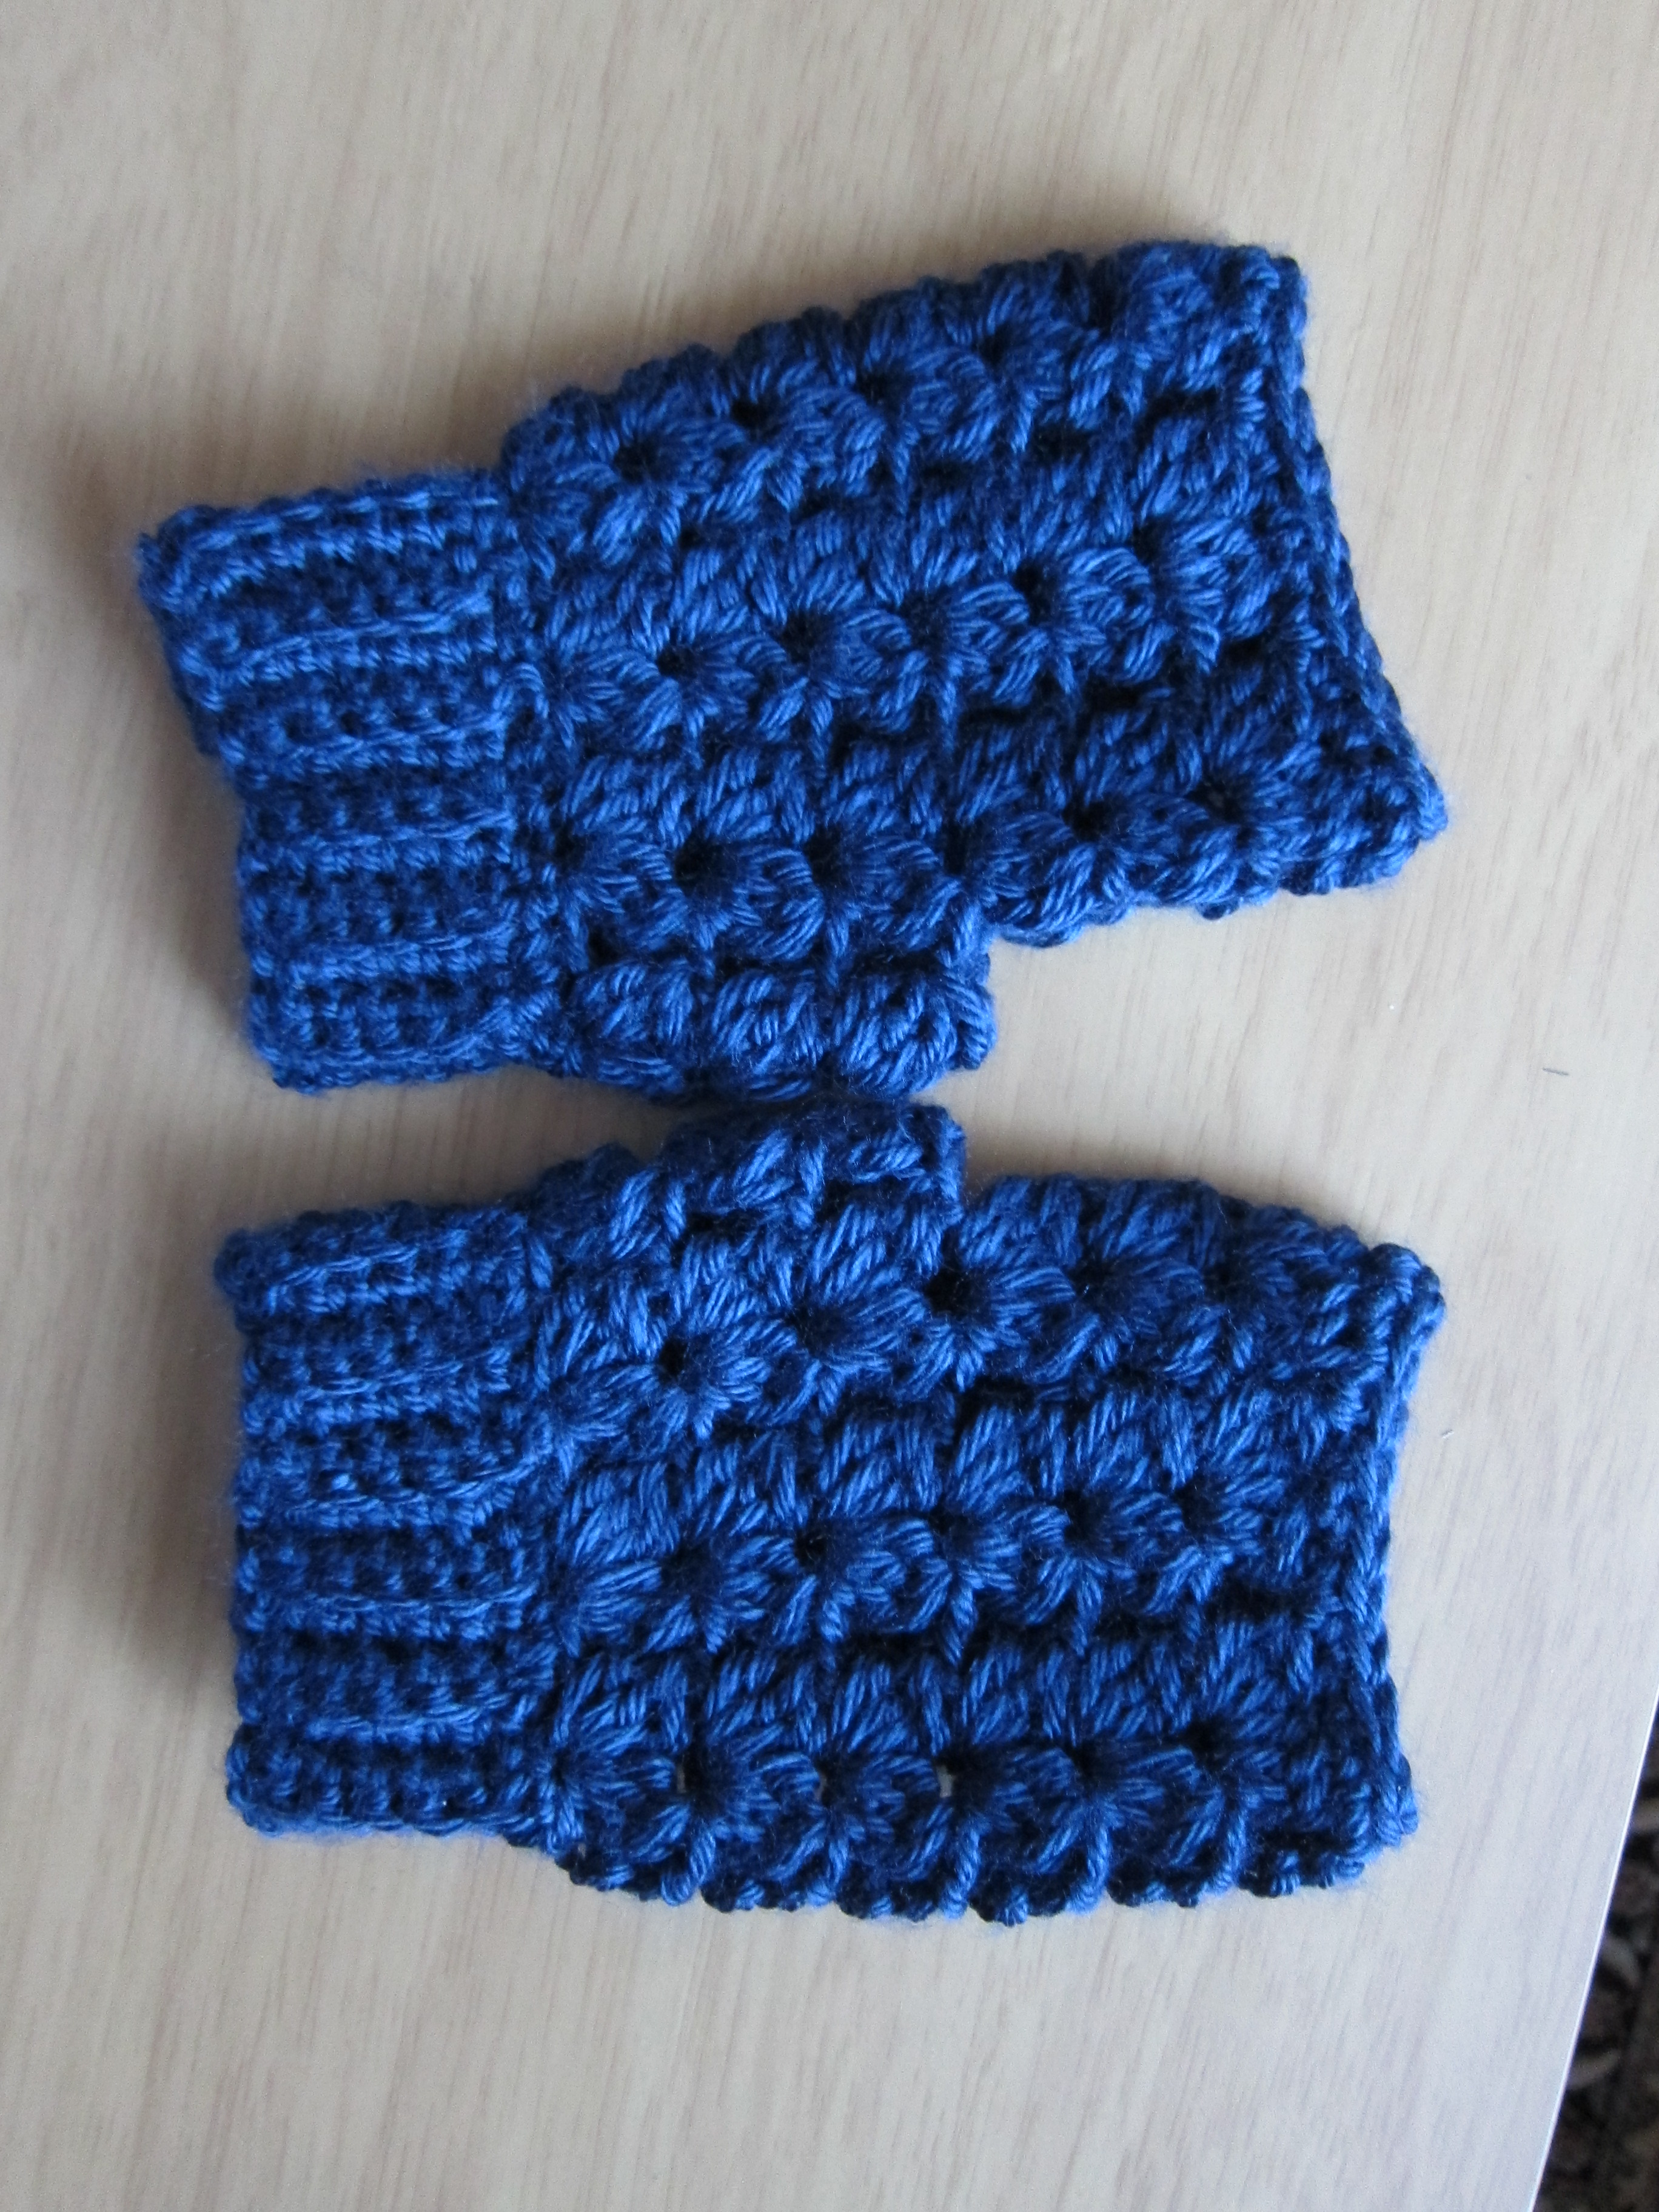 Crochet Stitches That Use Less Yarn : Use a 5 mm crochet hook and worsted weight yarn. I used Caron simply ...